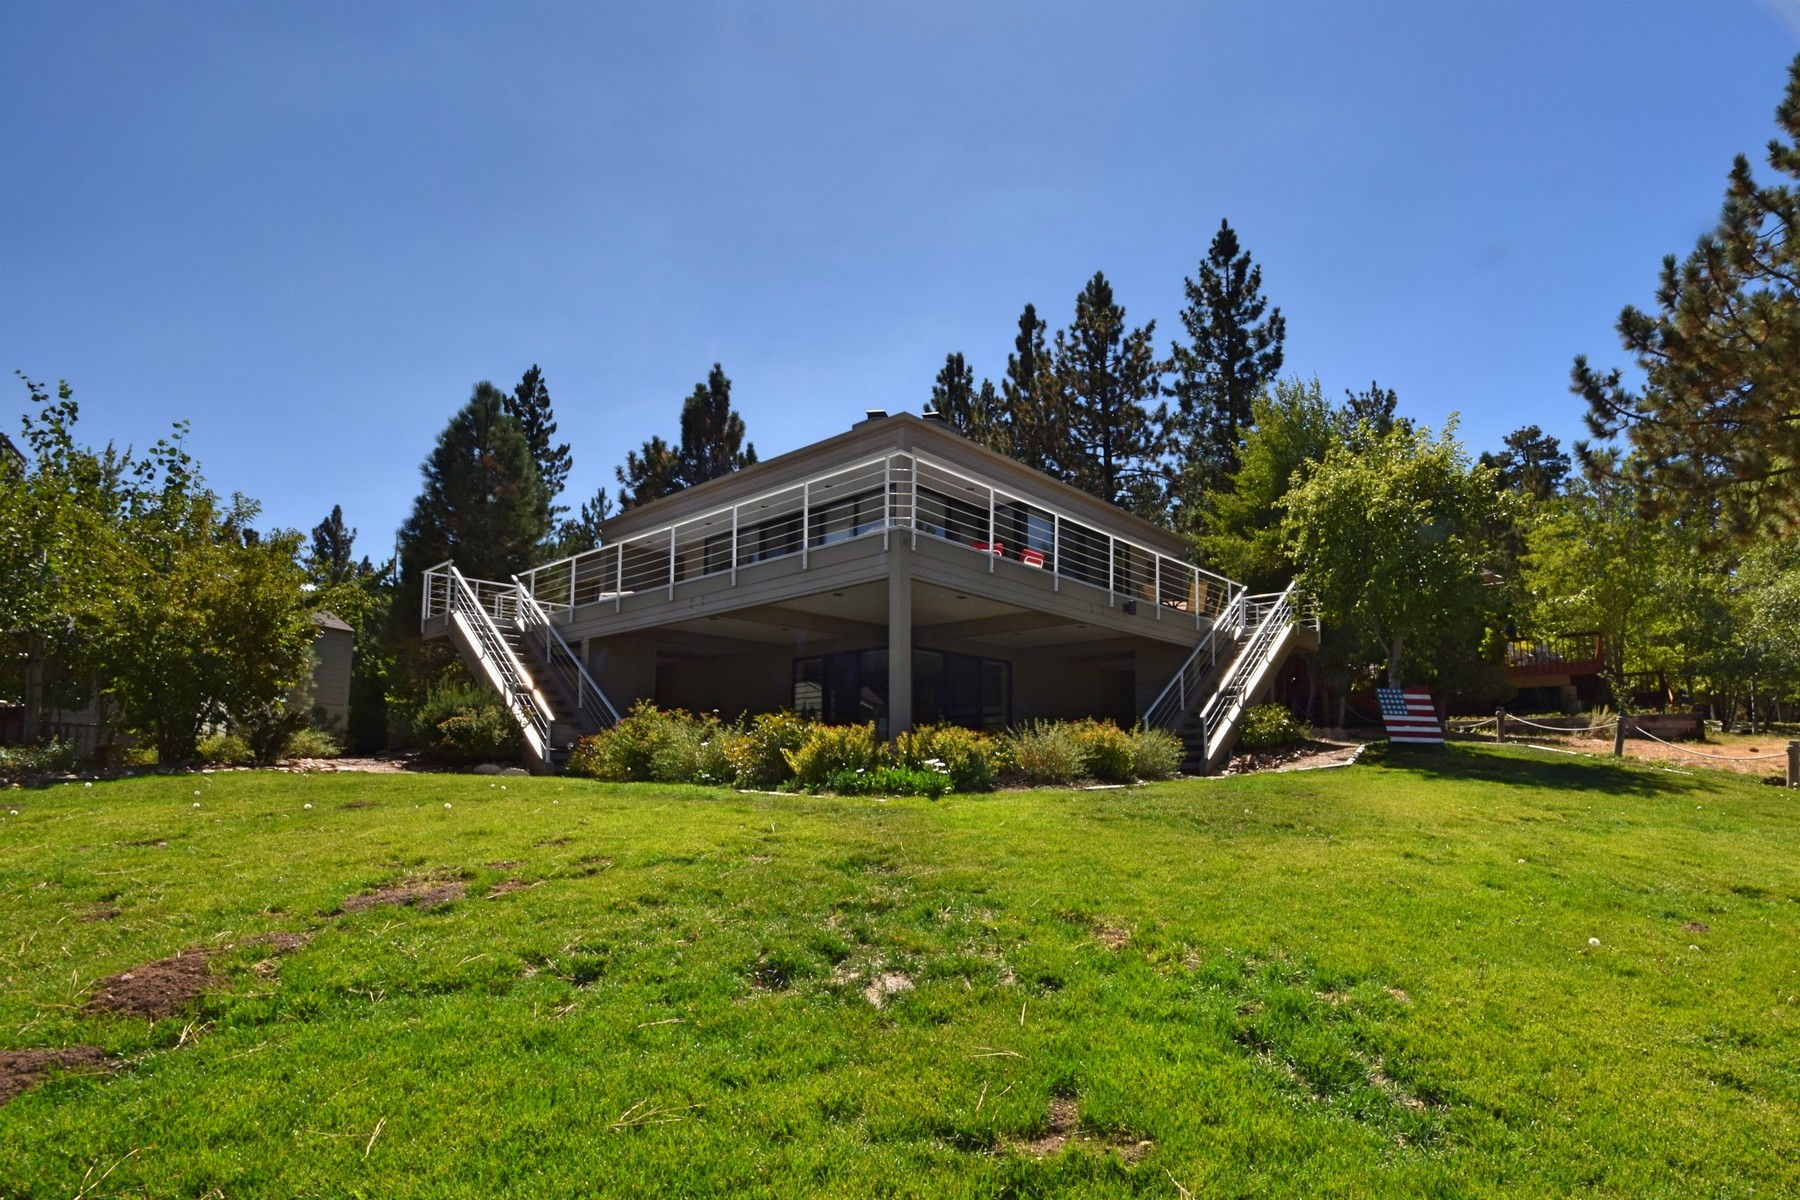 Single Family Homes for Sale at 39280 Waterview Drive Big Bear Lake, California 92315 39280 Waterview Drive Big Bear Lake, California 92315 United States